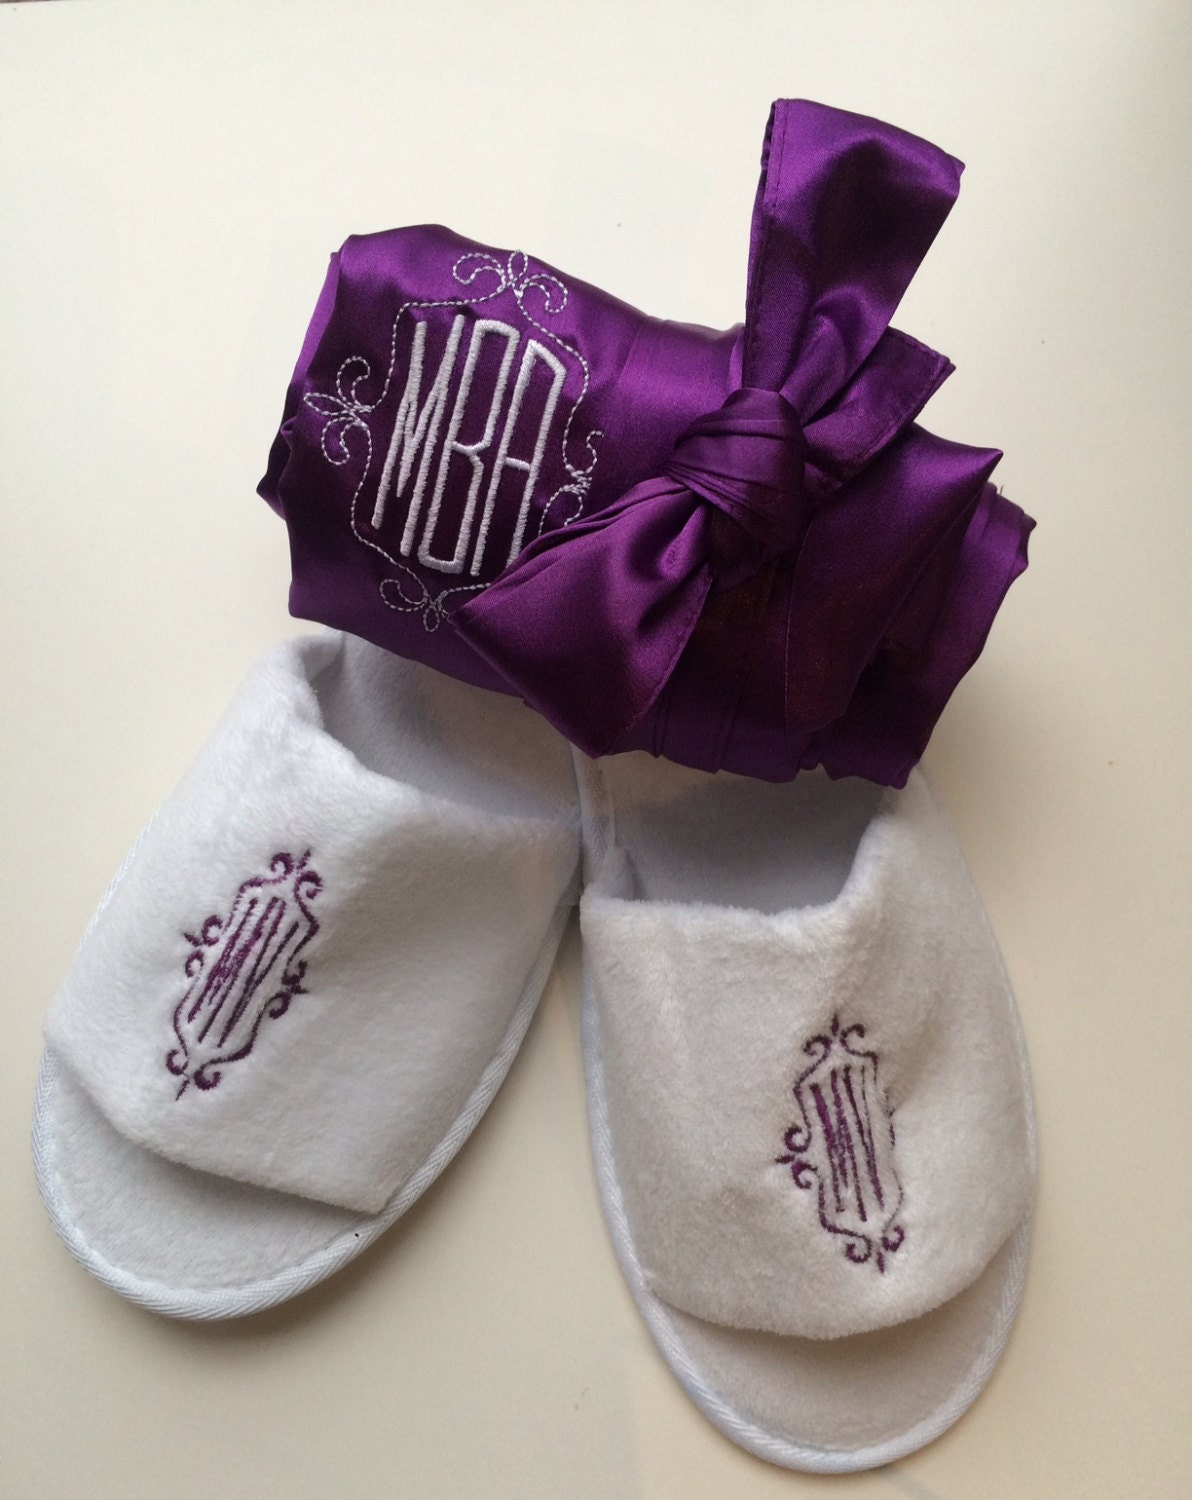 4e8687c33 Bridal Party Robes with Spa Slippers